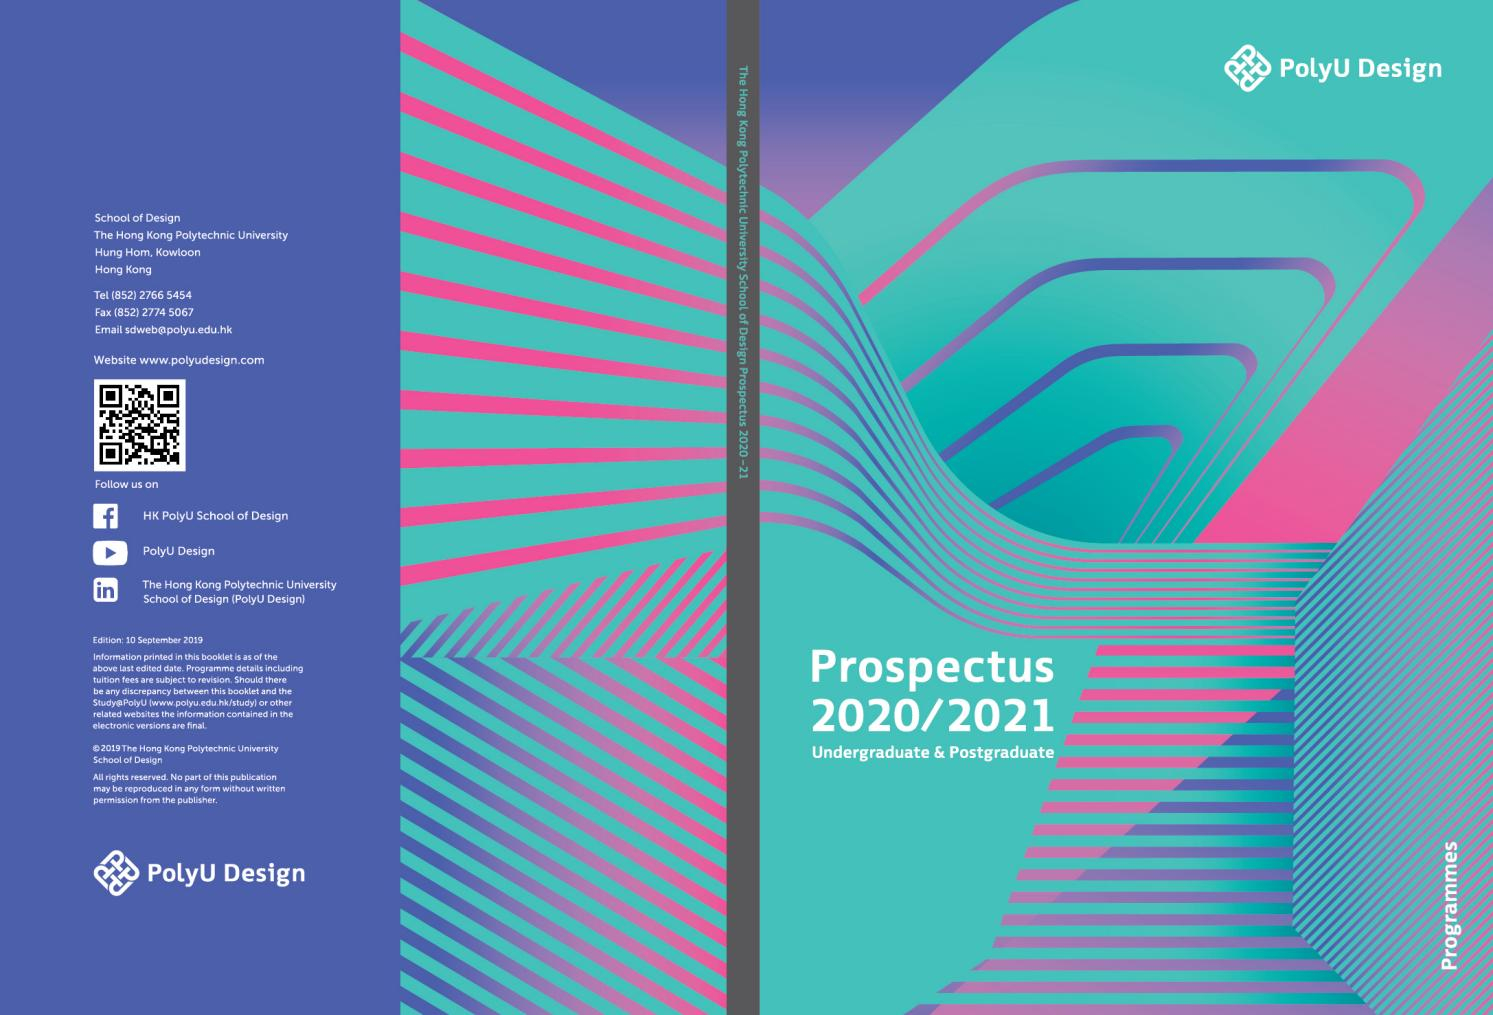 Polyu Design 2020/2021 Prospectus - Programmespolyu In University Of Glasgow Academic Calender 2021